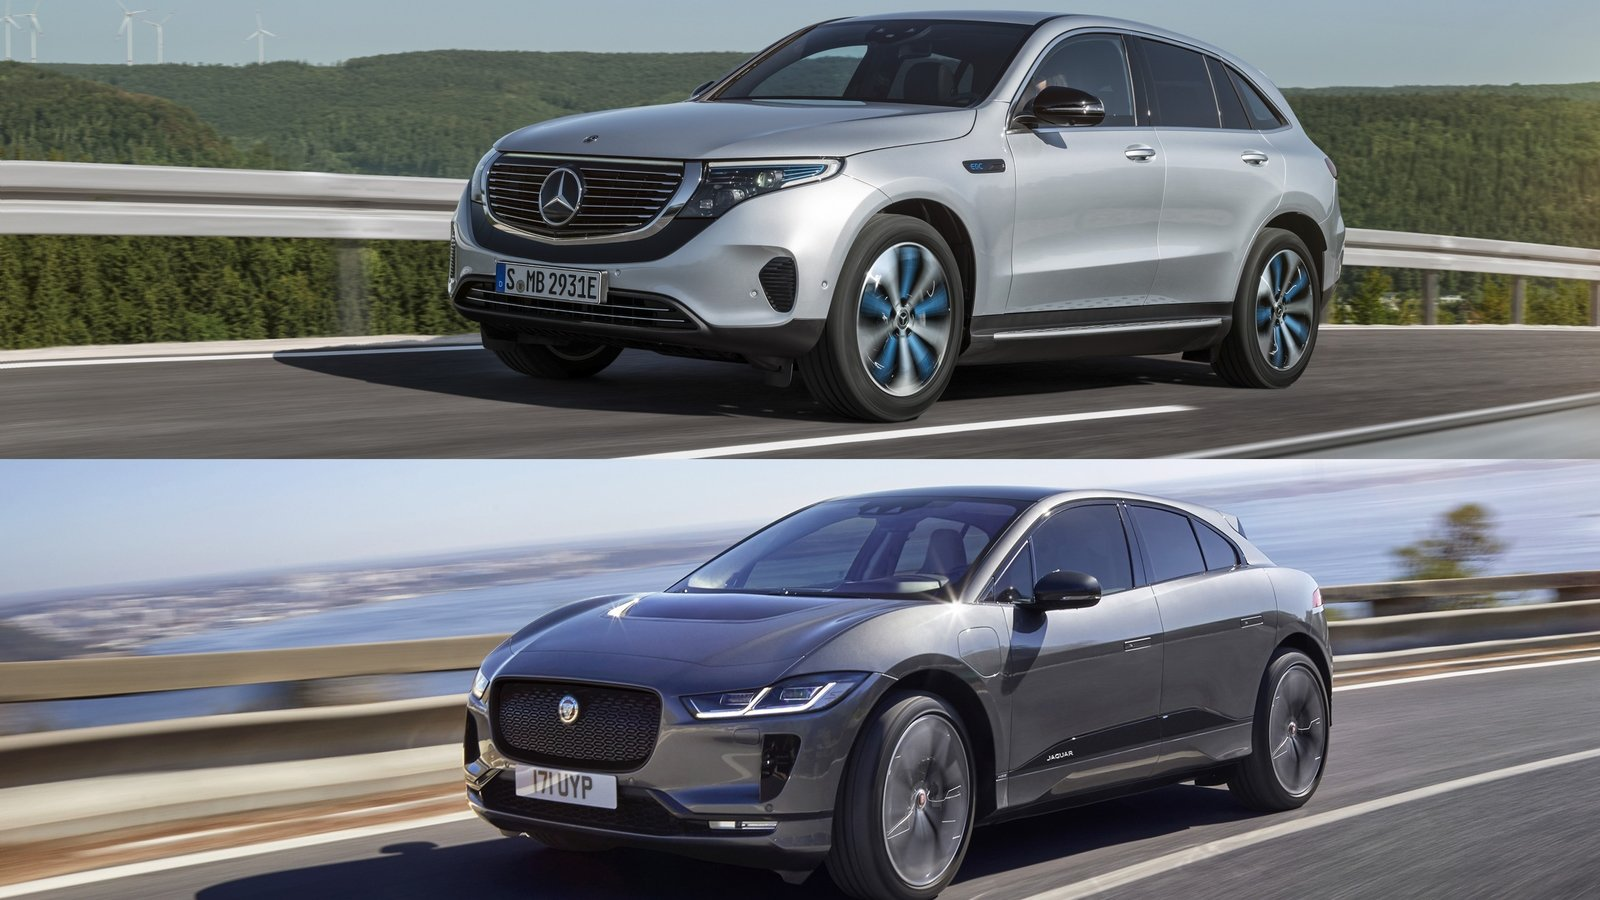 Who Makes Cadillac >> Mercedes-Benz EQC Vs Jaguar I-Pace Pictures, Photos ...